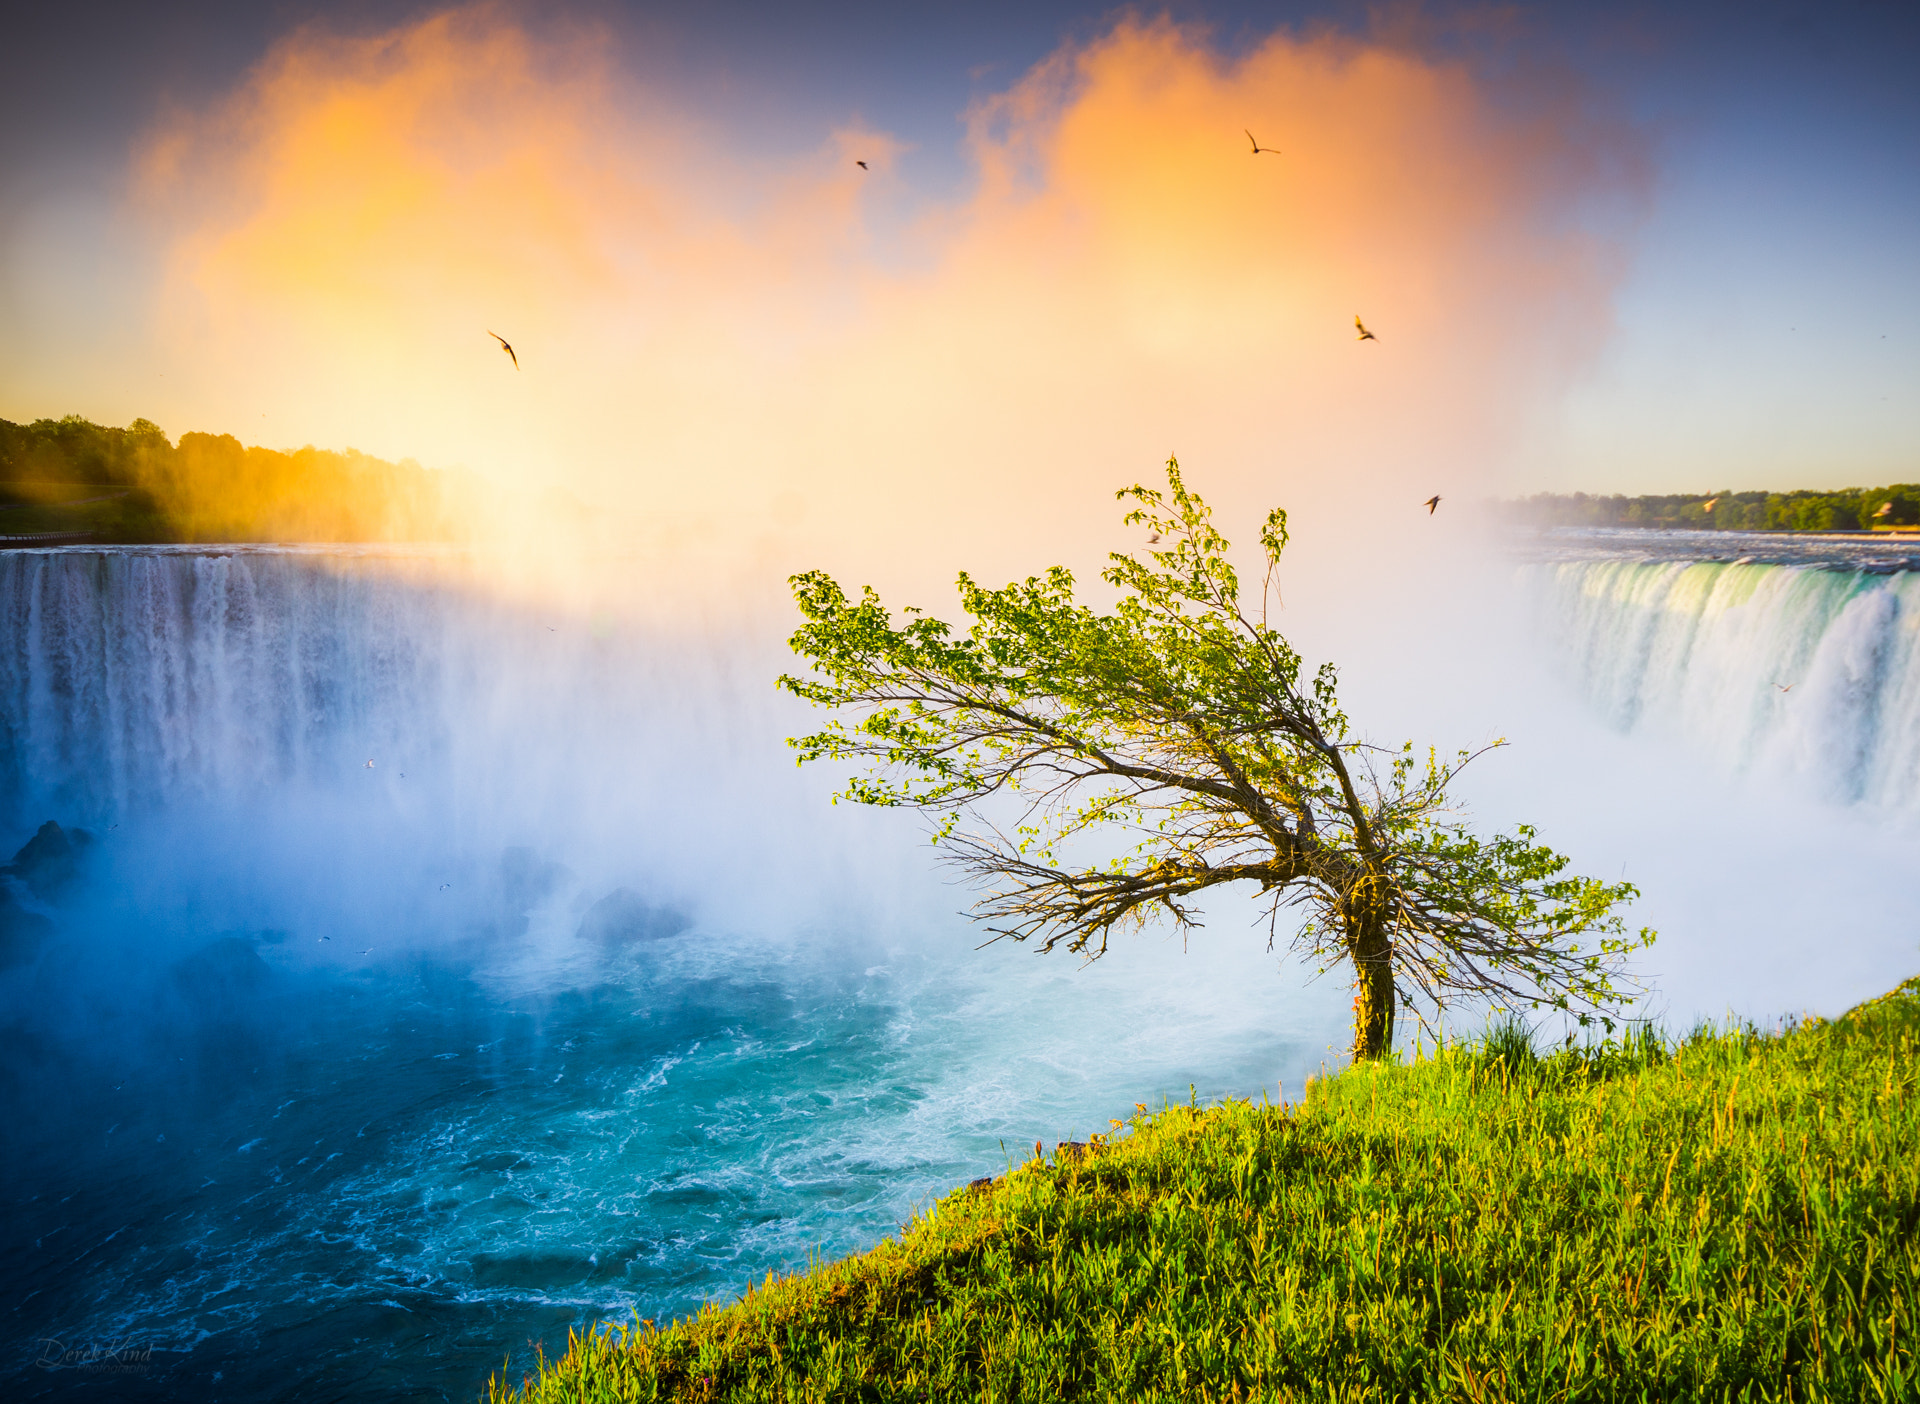 Photograph Another Beautiful Morning in Niagara by Derek Kind on 500px